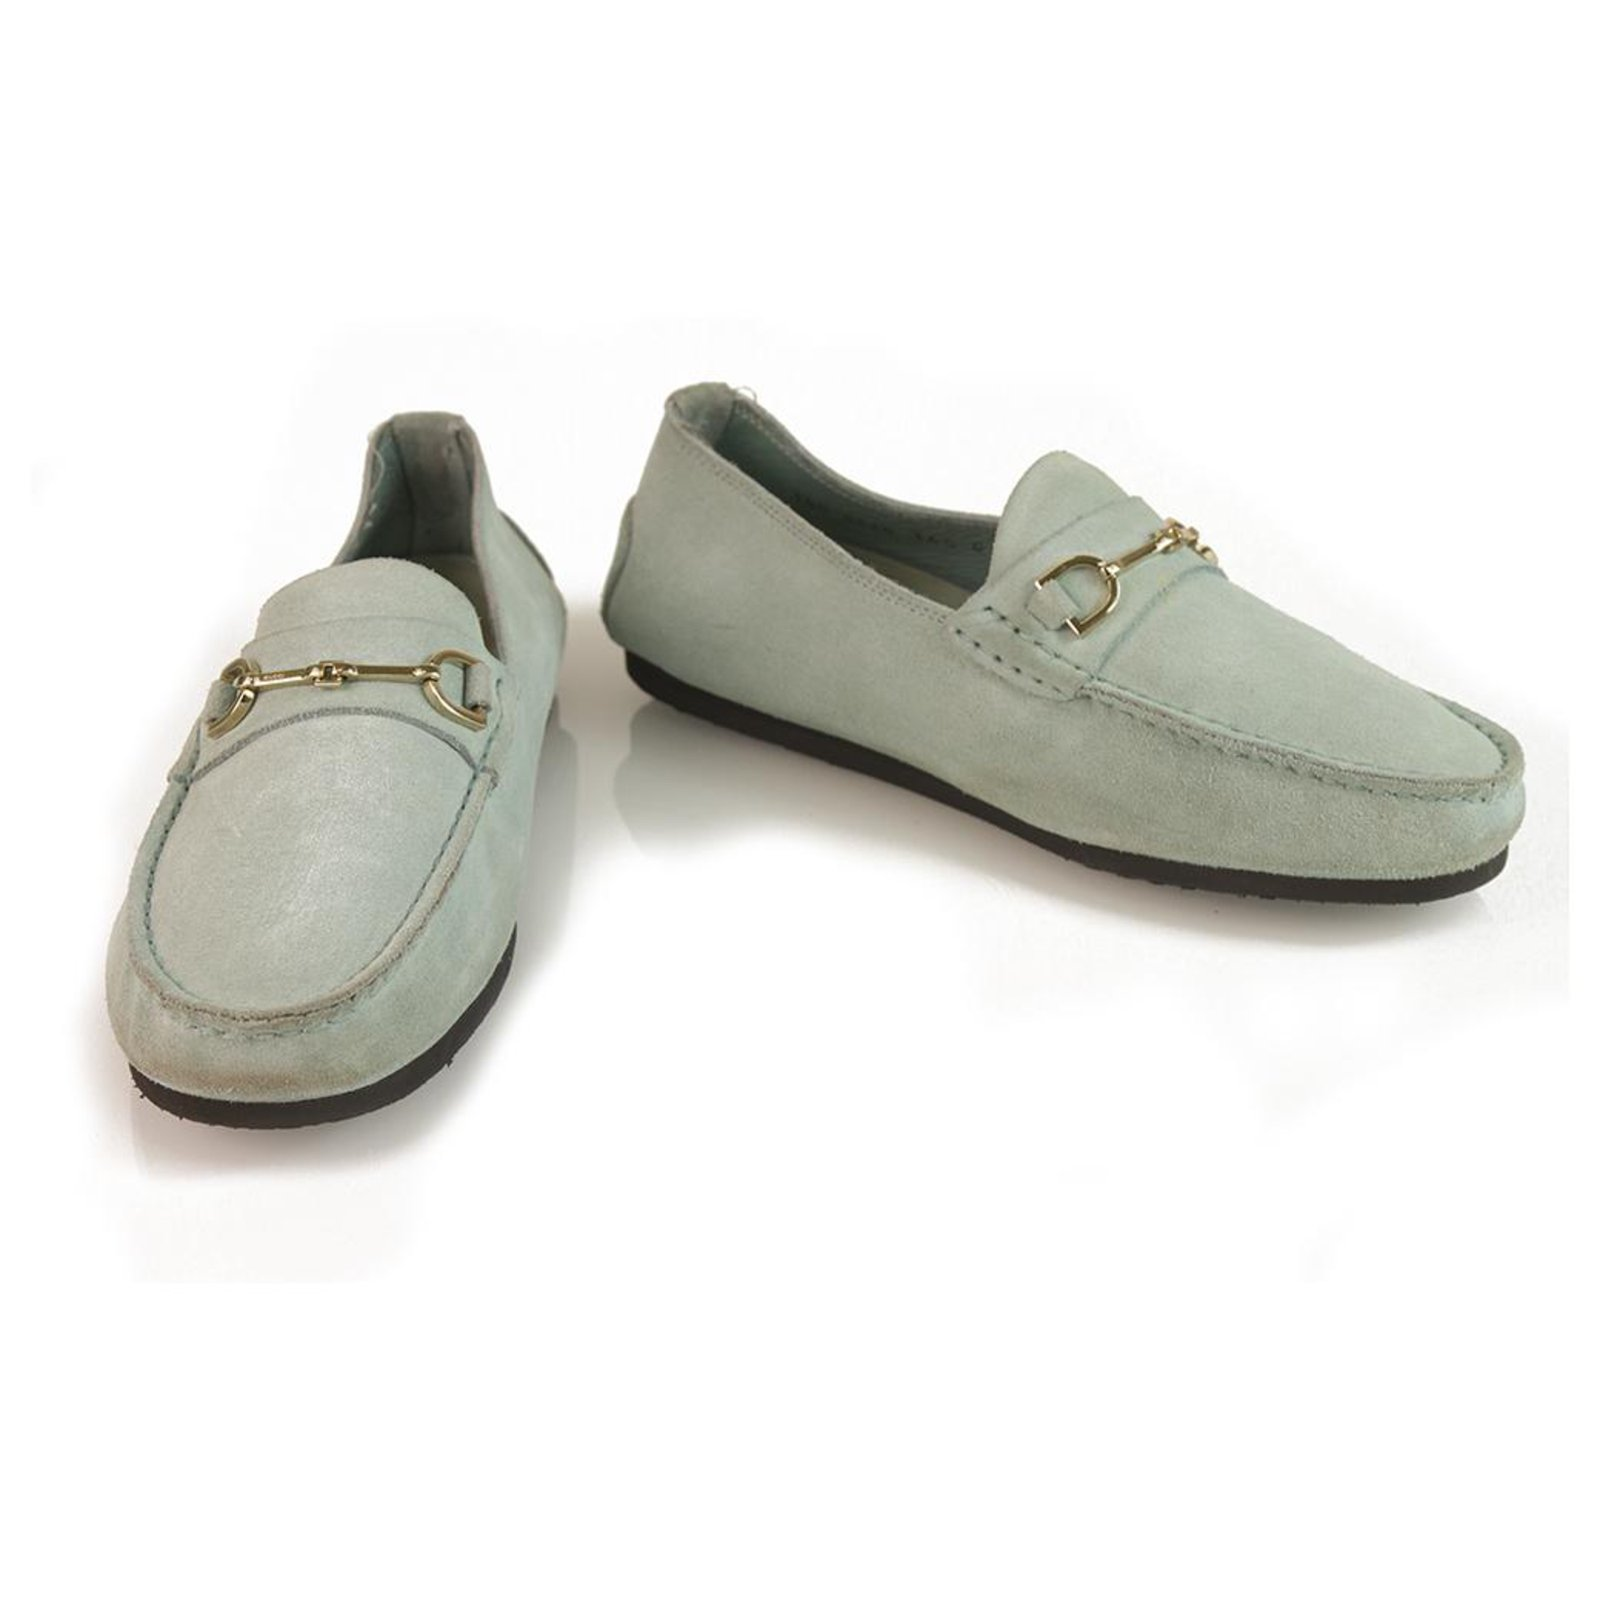 Gucci GUCCI Light blue suede leather